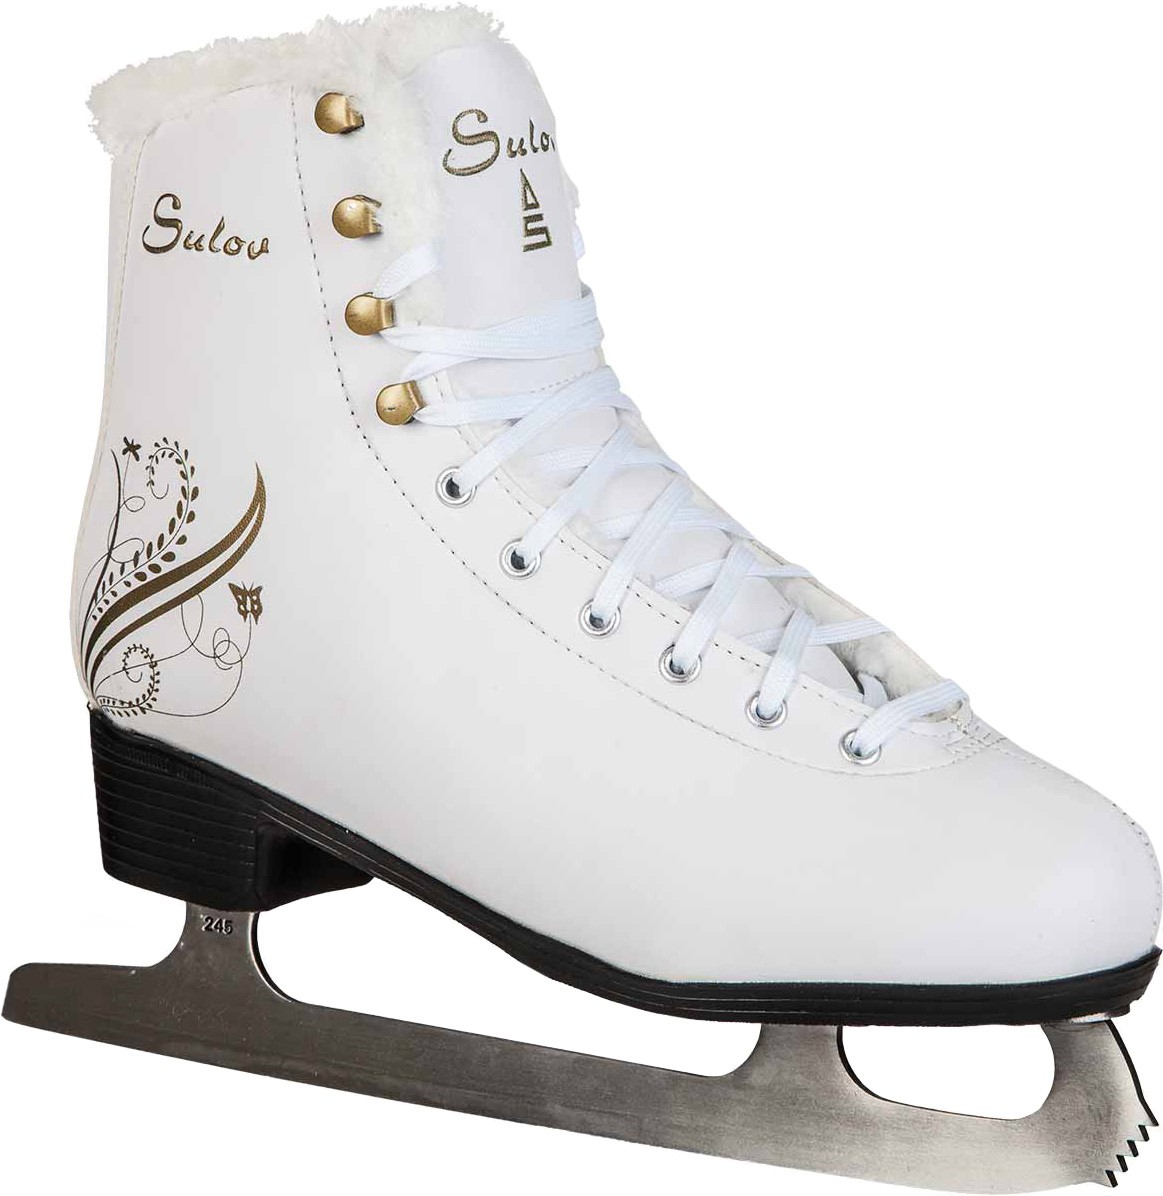 FLORA Sulov Girls Figure Skates